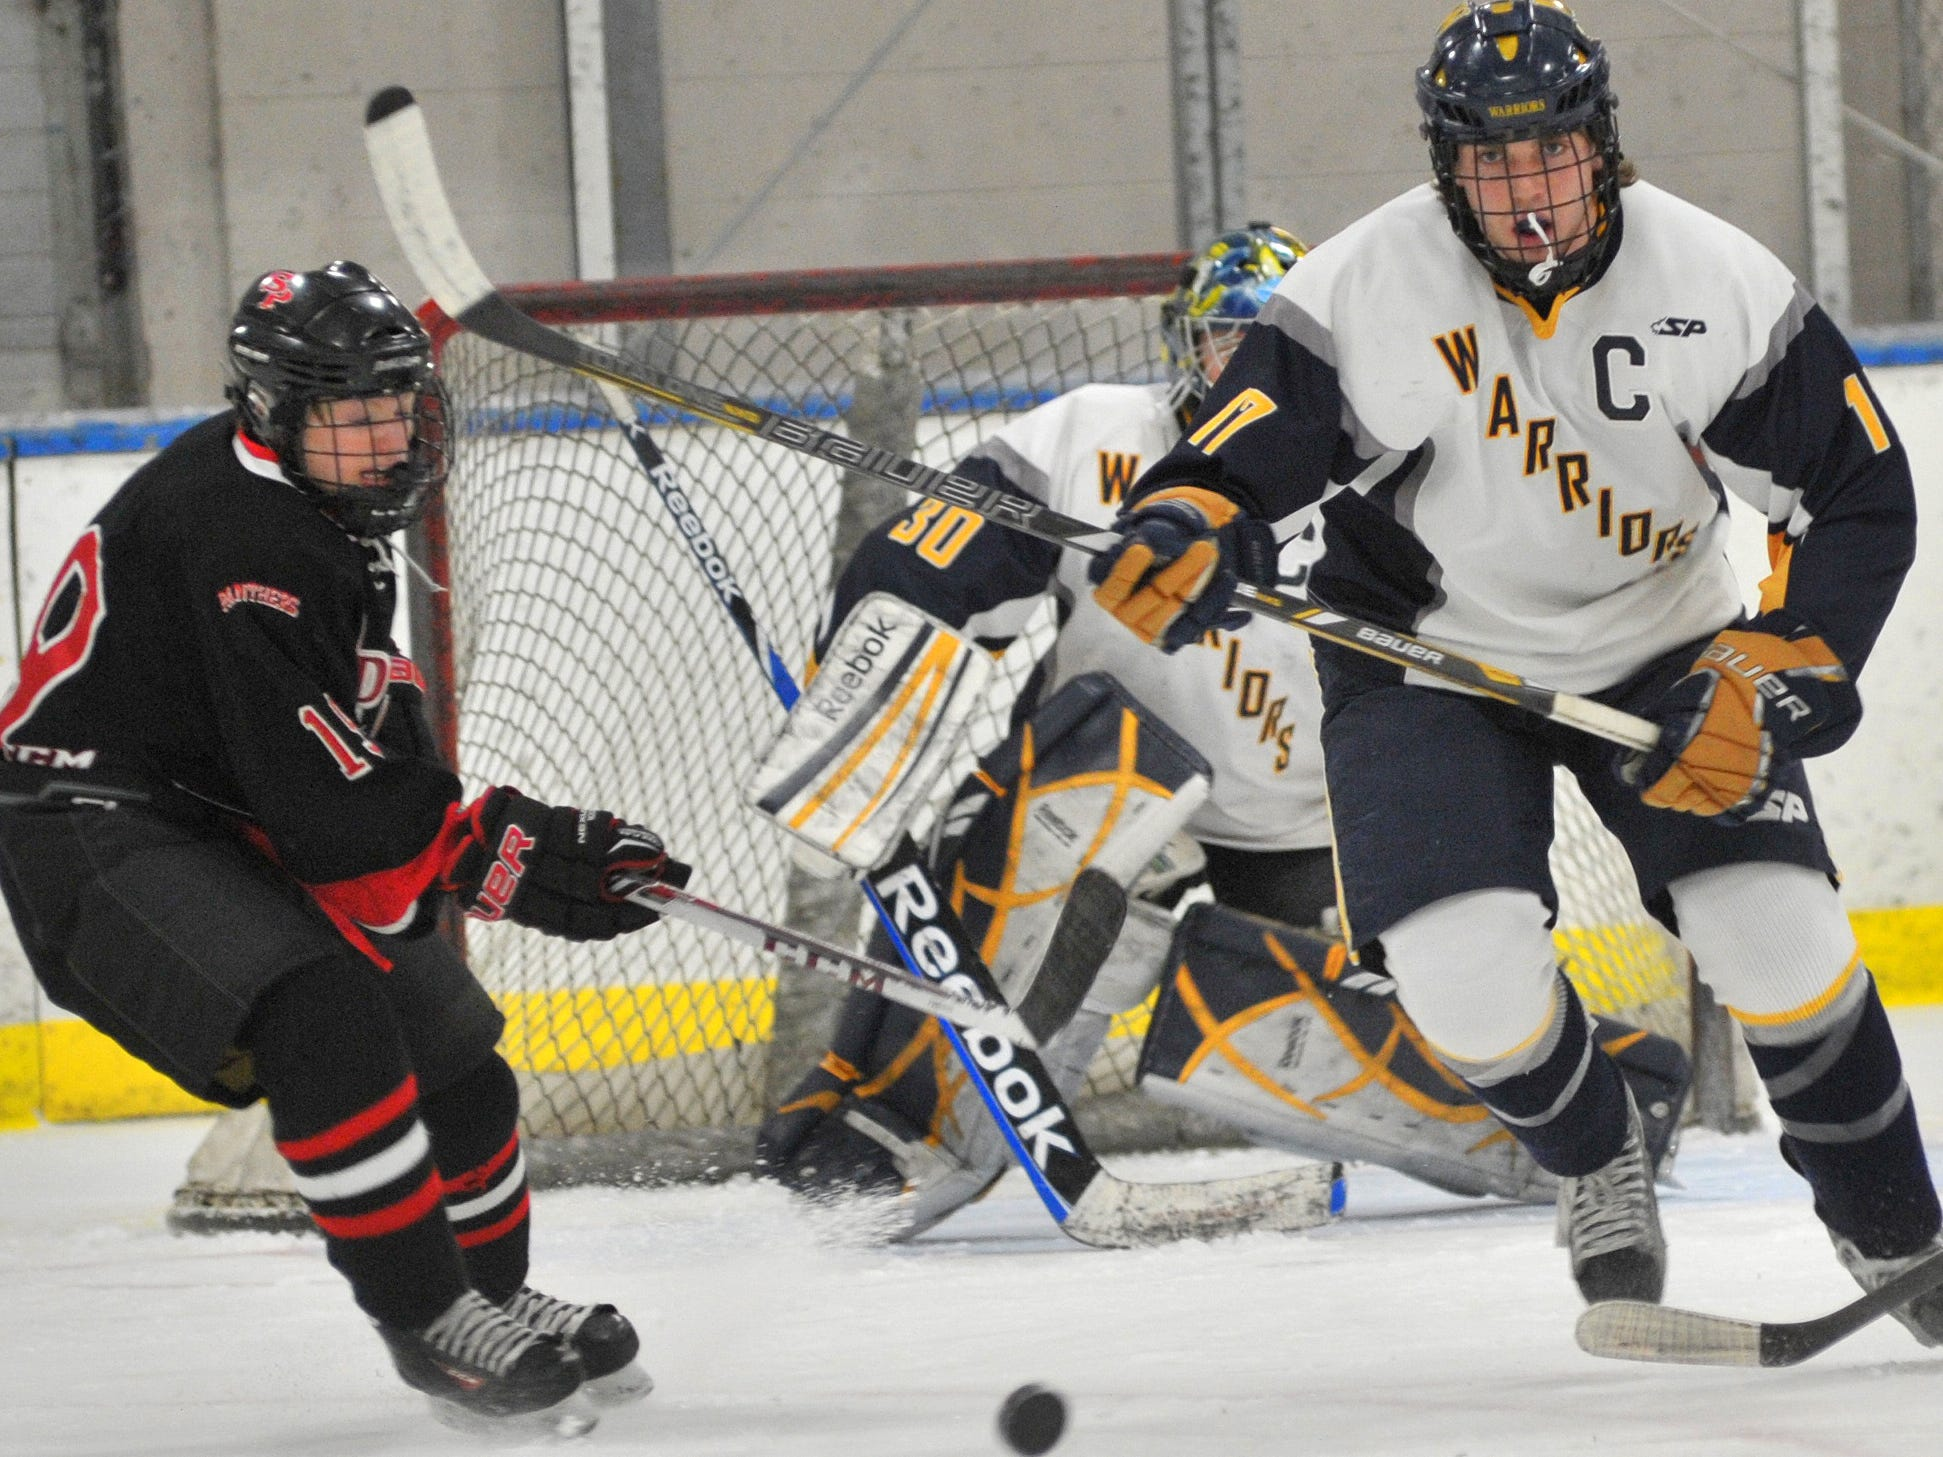 SPASH's Brock Caufield, left, hopes to chosen for the Team USA U-17 team after participating in a tryout camp for the squad last month.